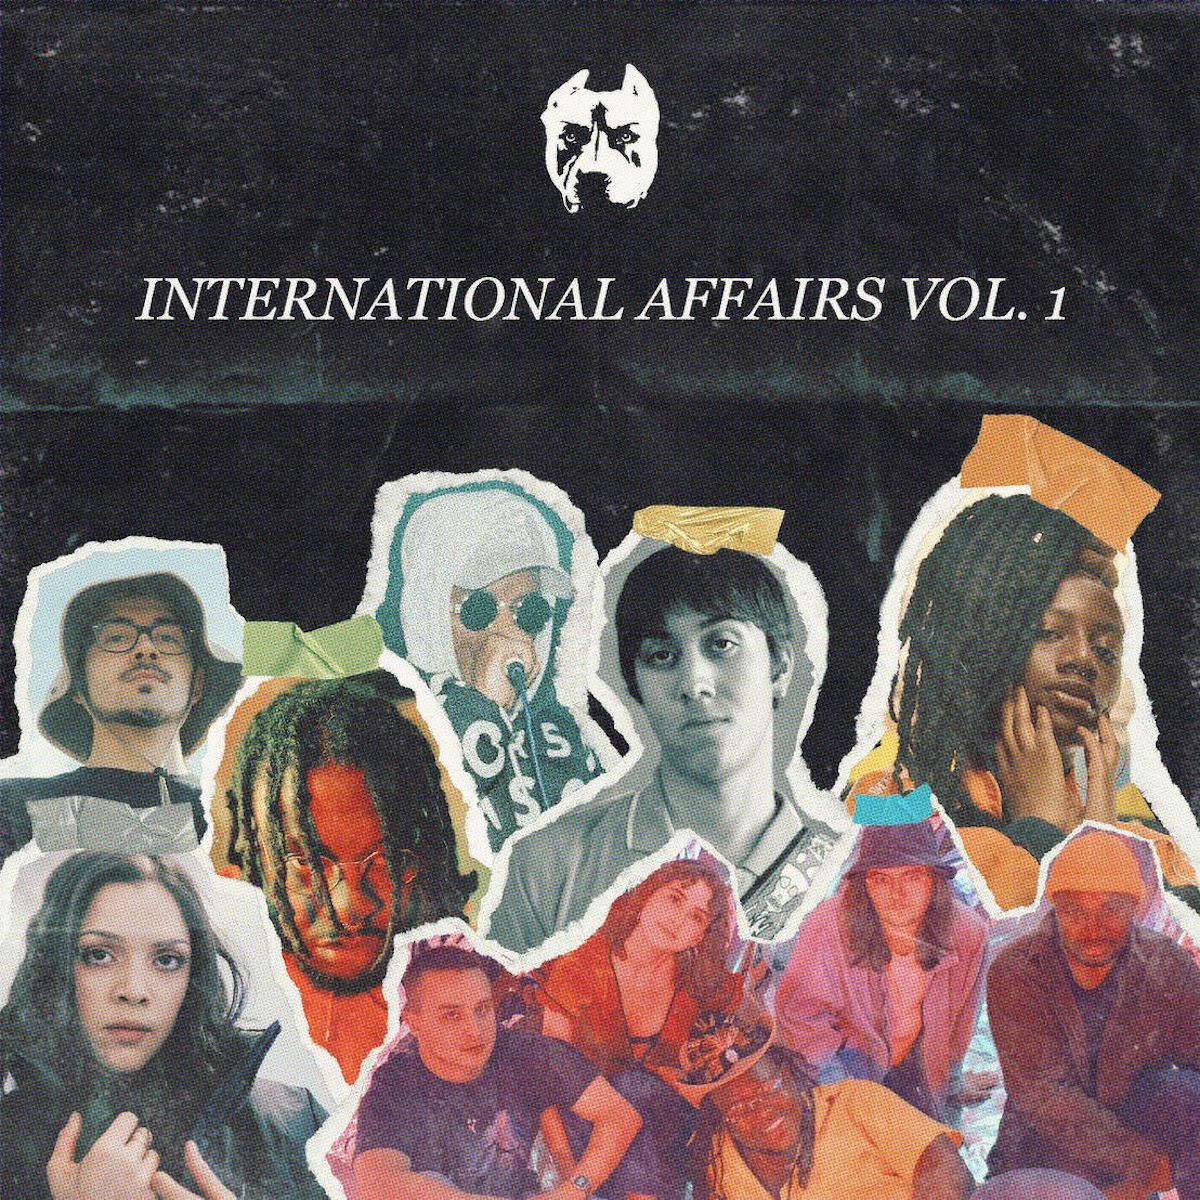 The Pit LDN Unite Jazz, Rap And R&B Scenes From Both Sides Of The Atlantic On 'International Affairs Vol. 1'